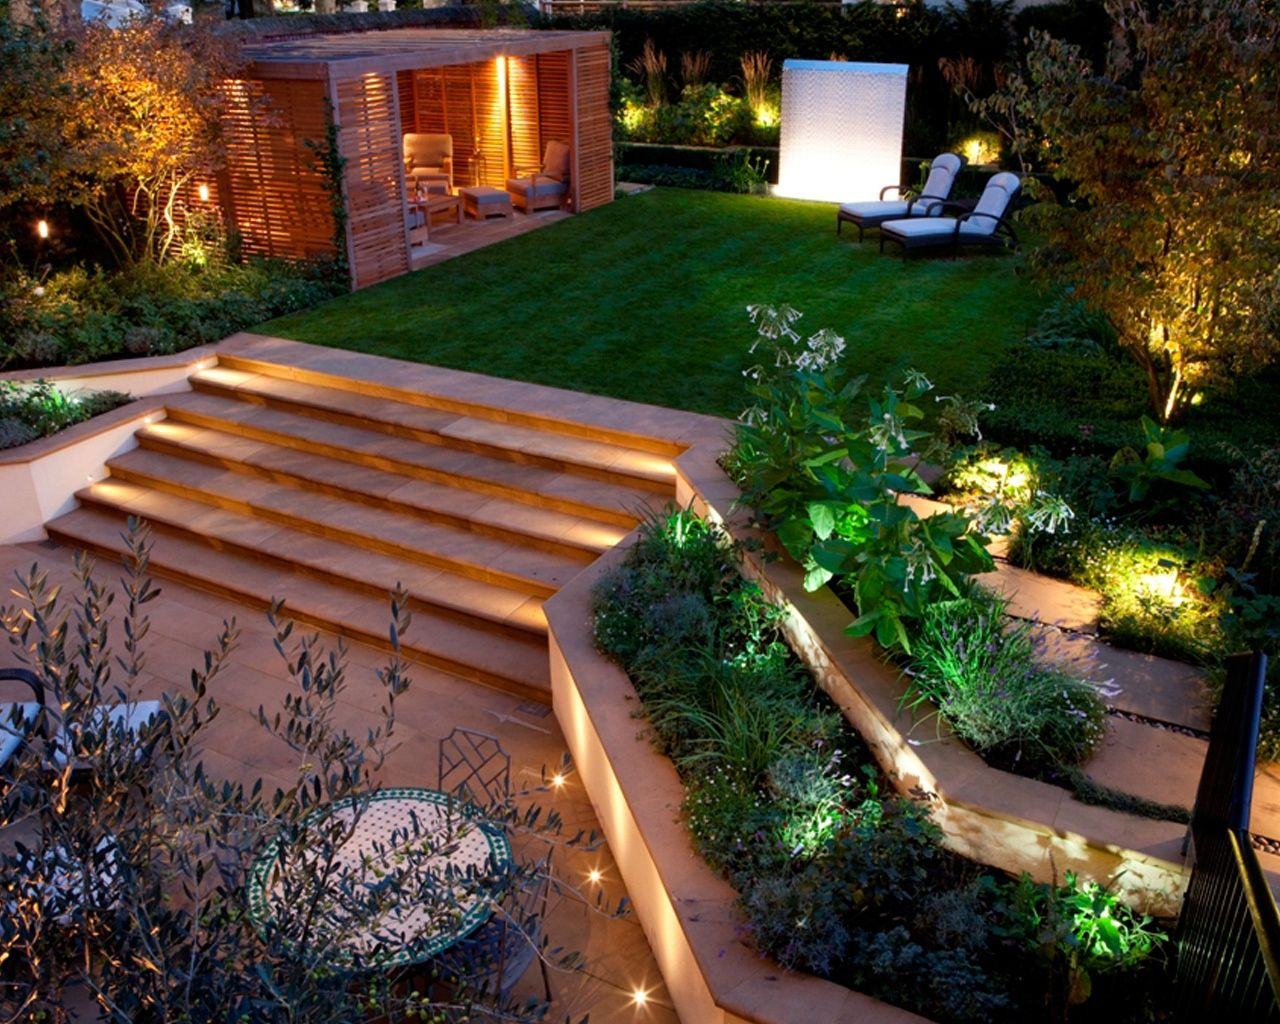 50 modern garden design ideas to try in 2017 | contemporary garden